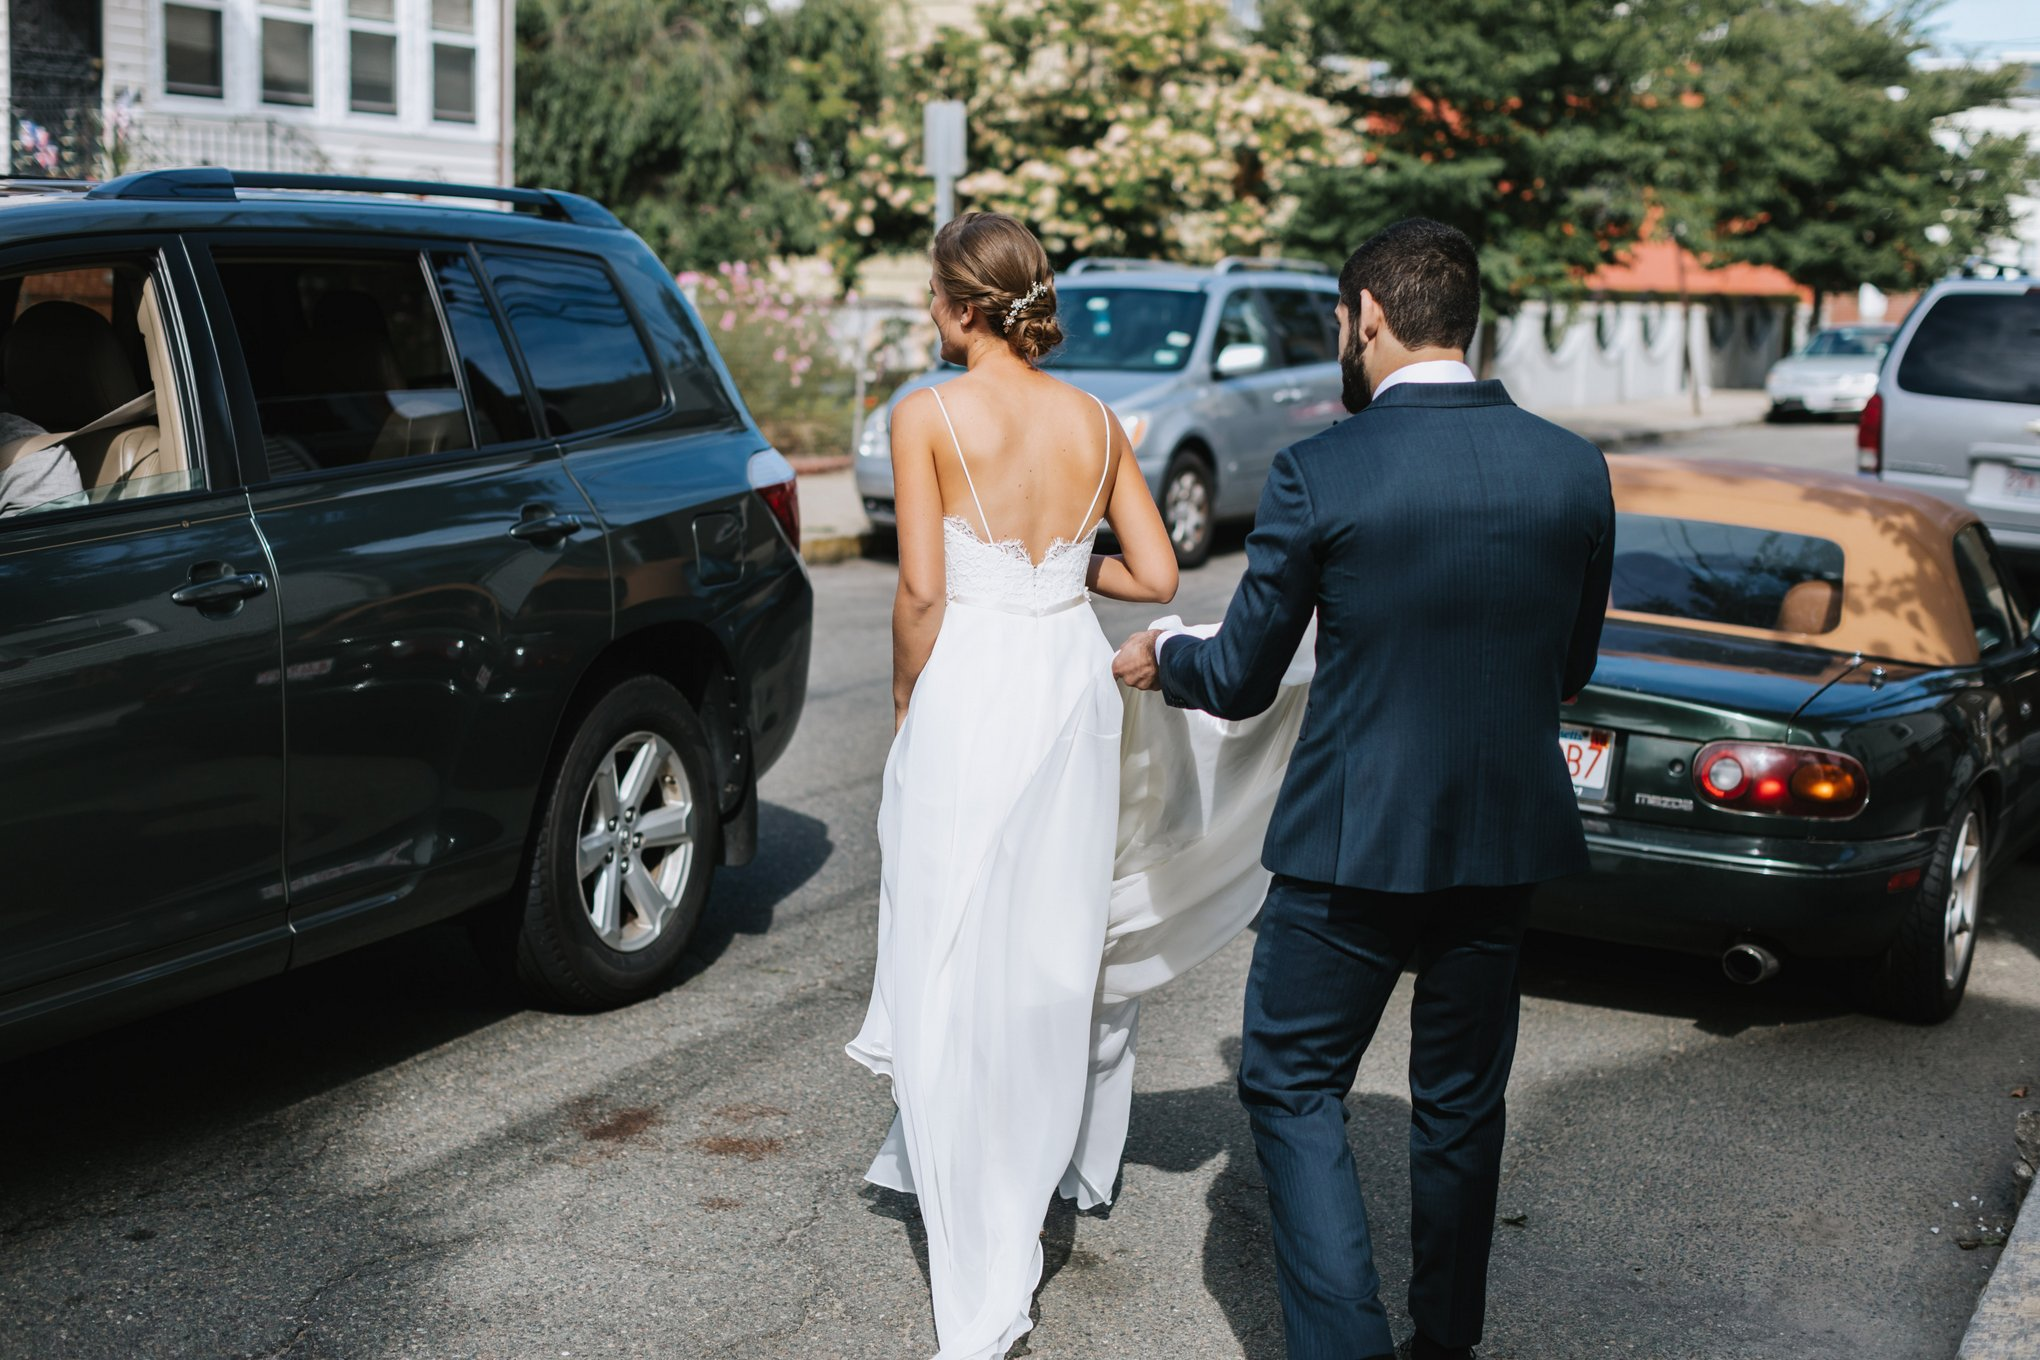 Cambridge_Puritan_Co_Wedding_Photographer_Harvard_11.jpg